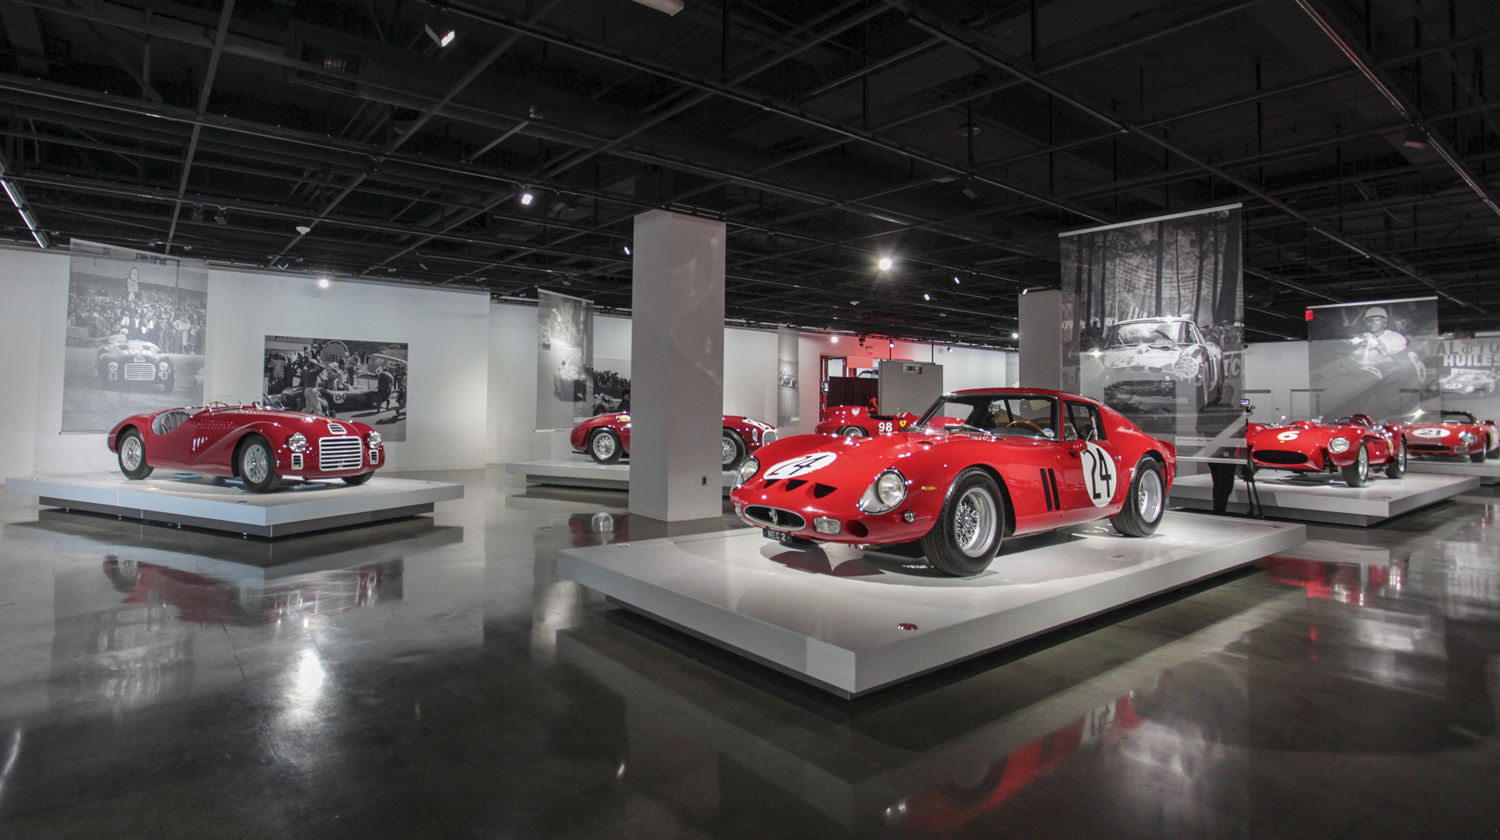 Seeing Red exhibit at the Petersen Automotive Museum